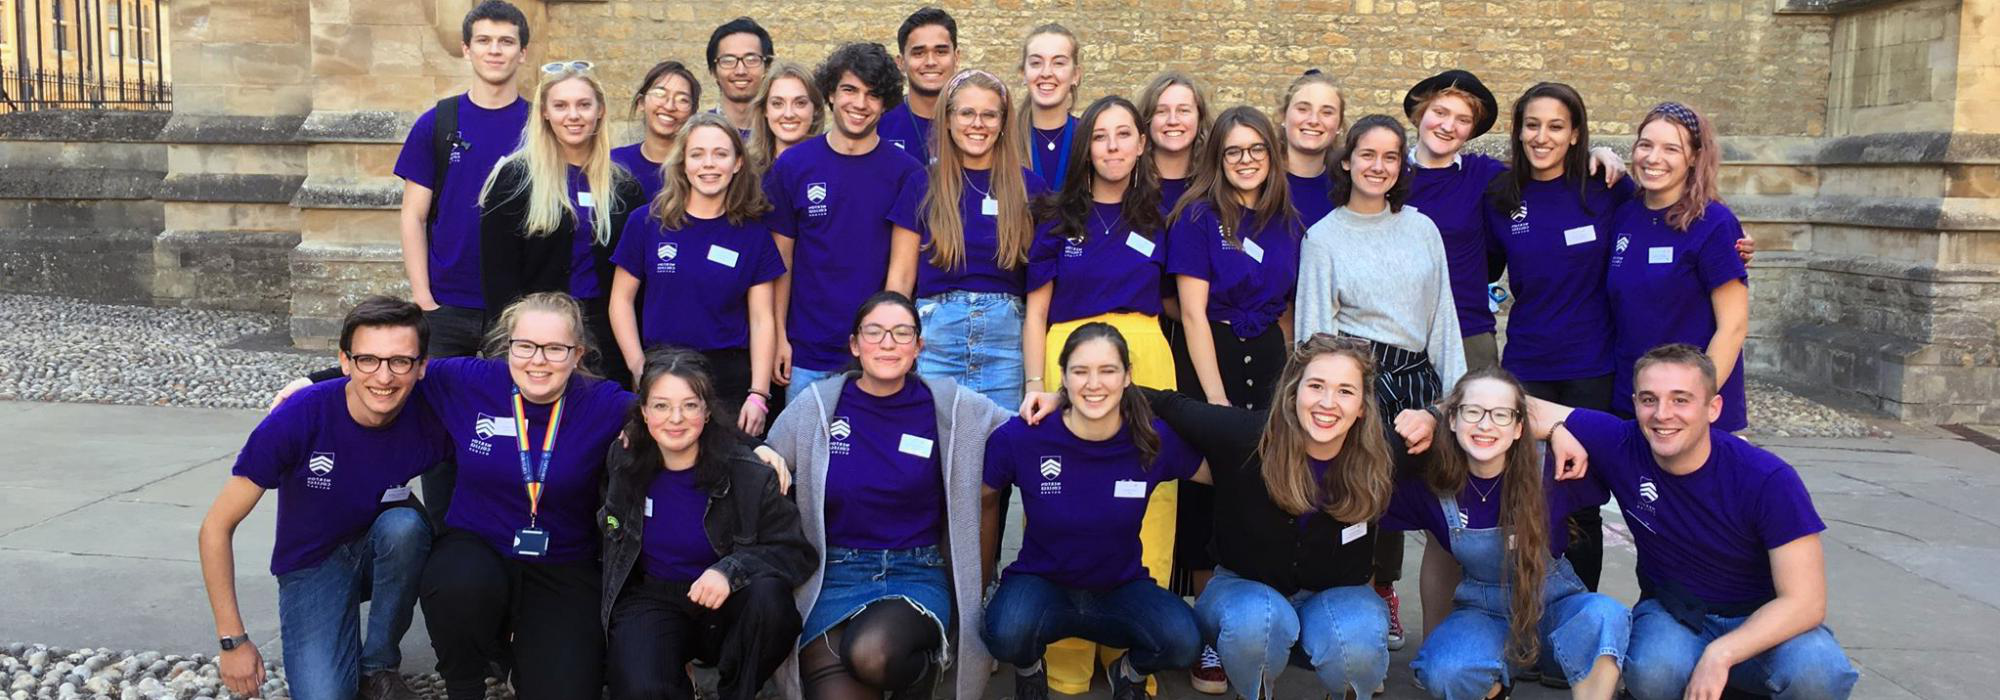 The Student Ambassador team in 2019